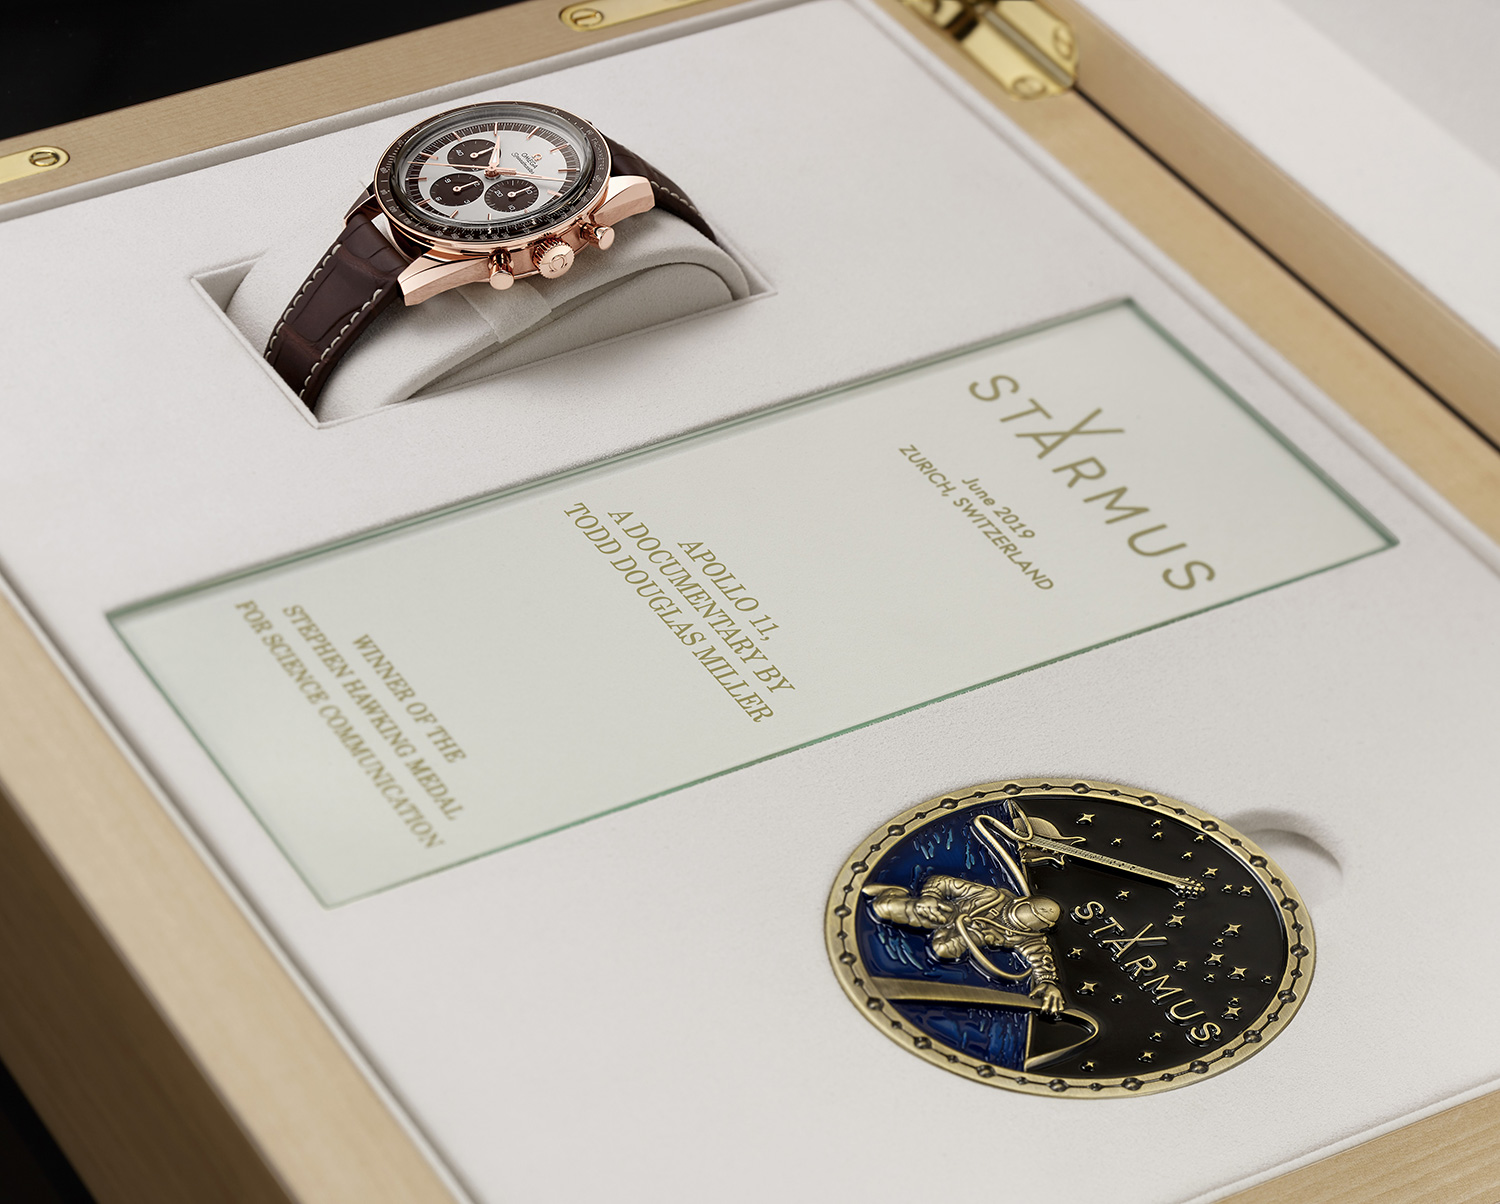 OMEGA awards the winners of the Stephen Hawking Medal for Science Communication Speedmaster